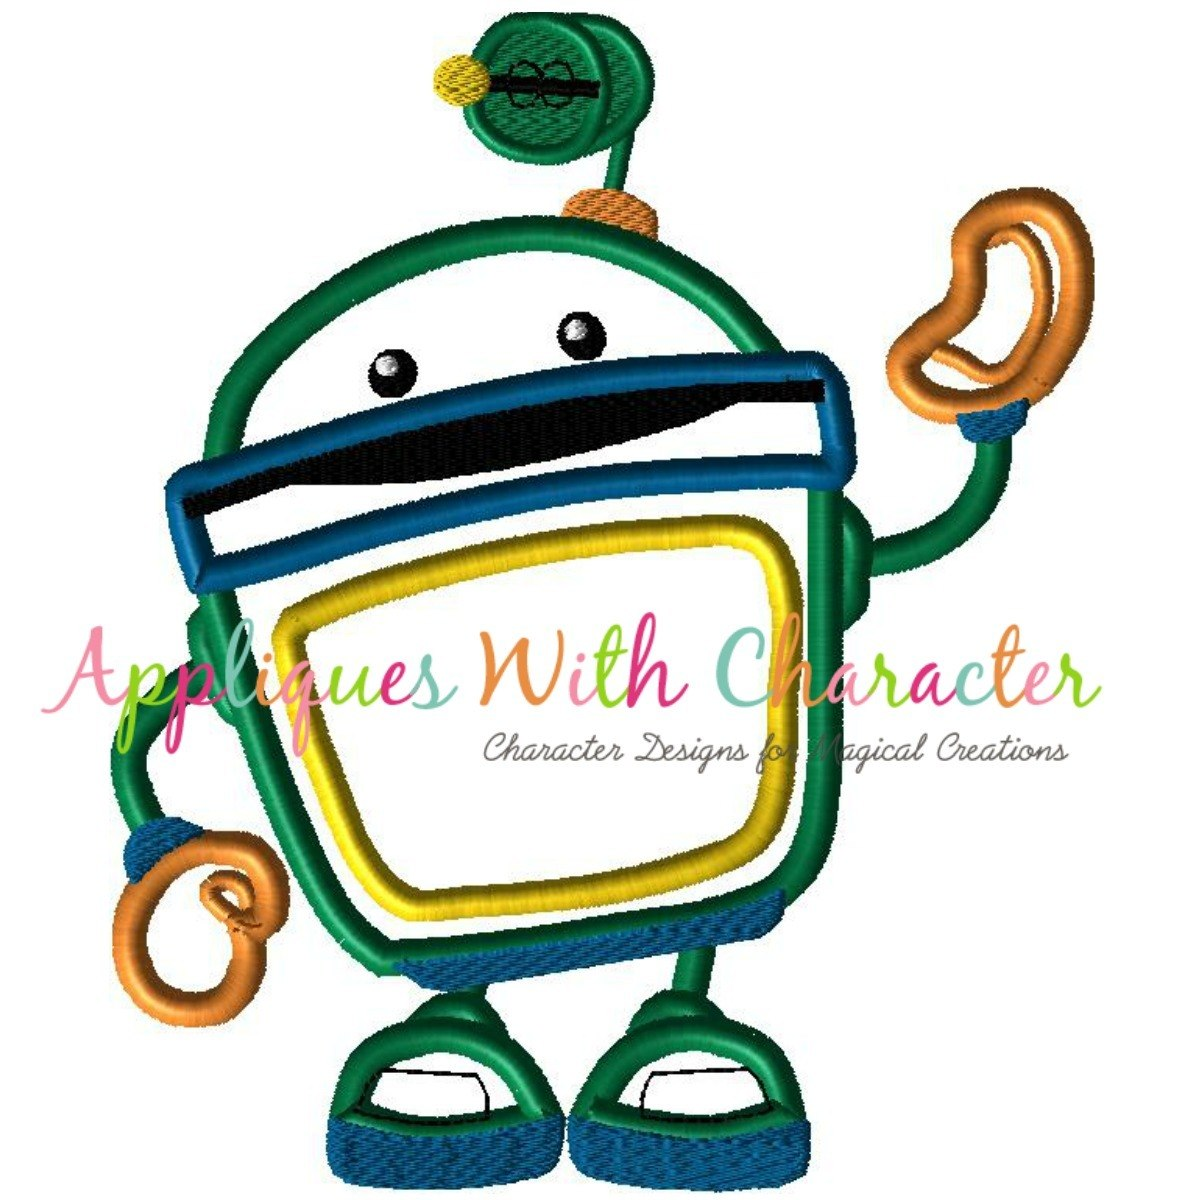 1200x1200 Team Umizoomi Bot Applique Design By Appliques With Character